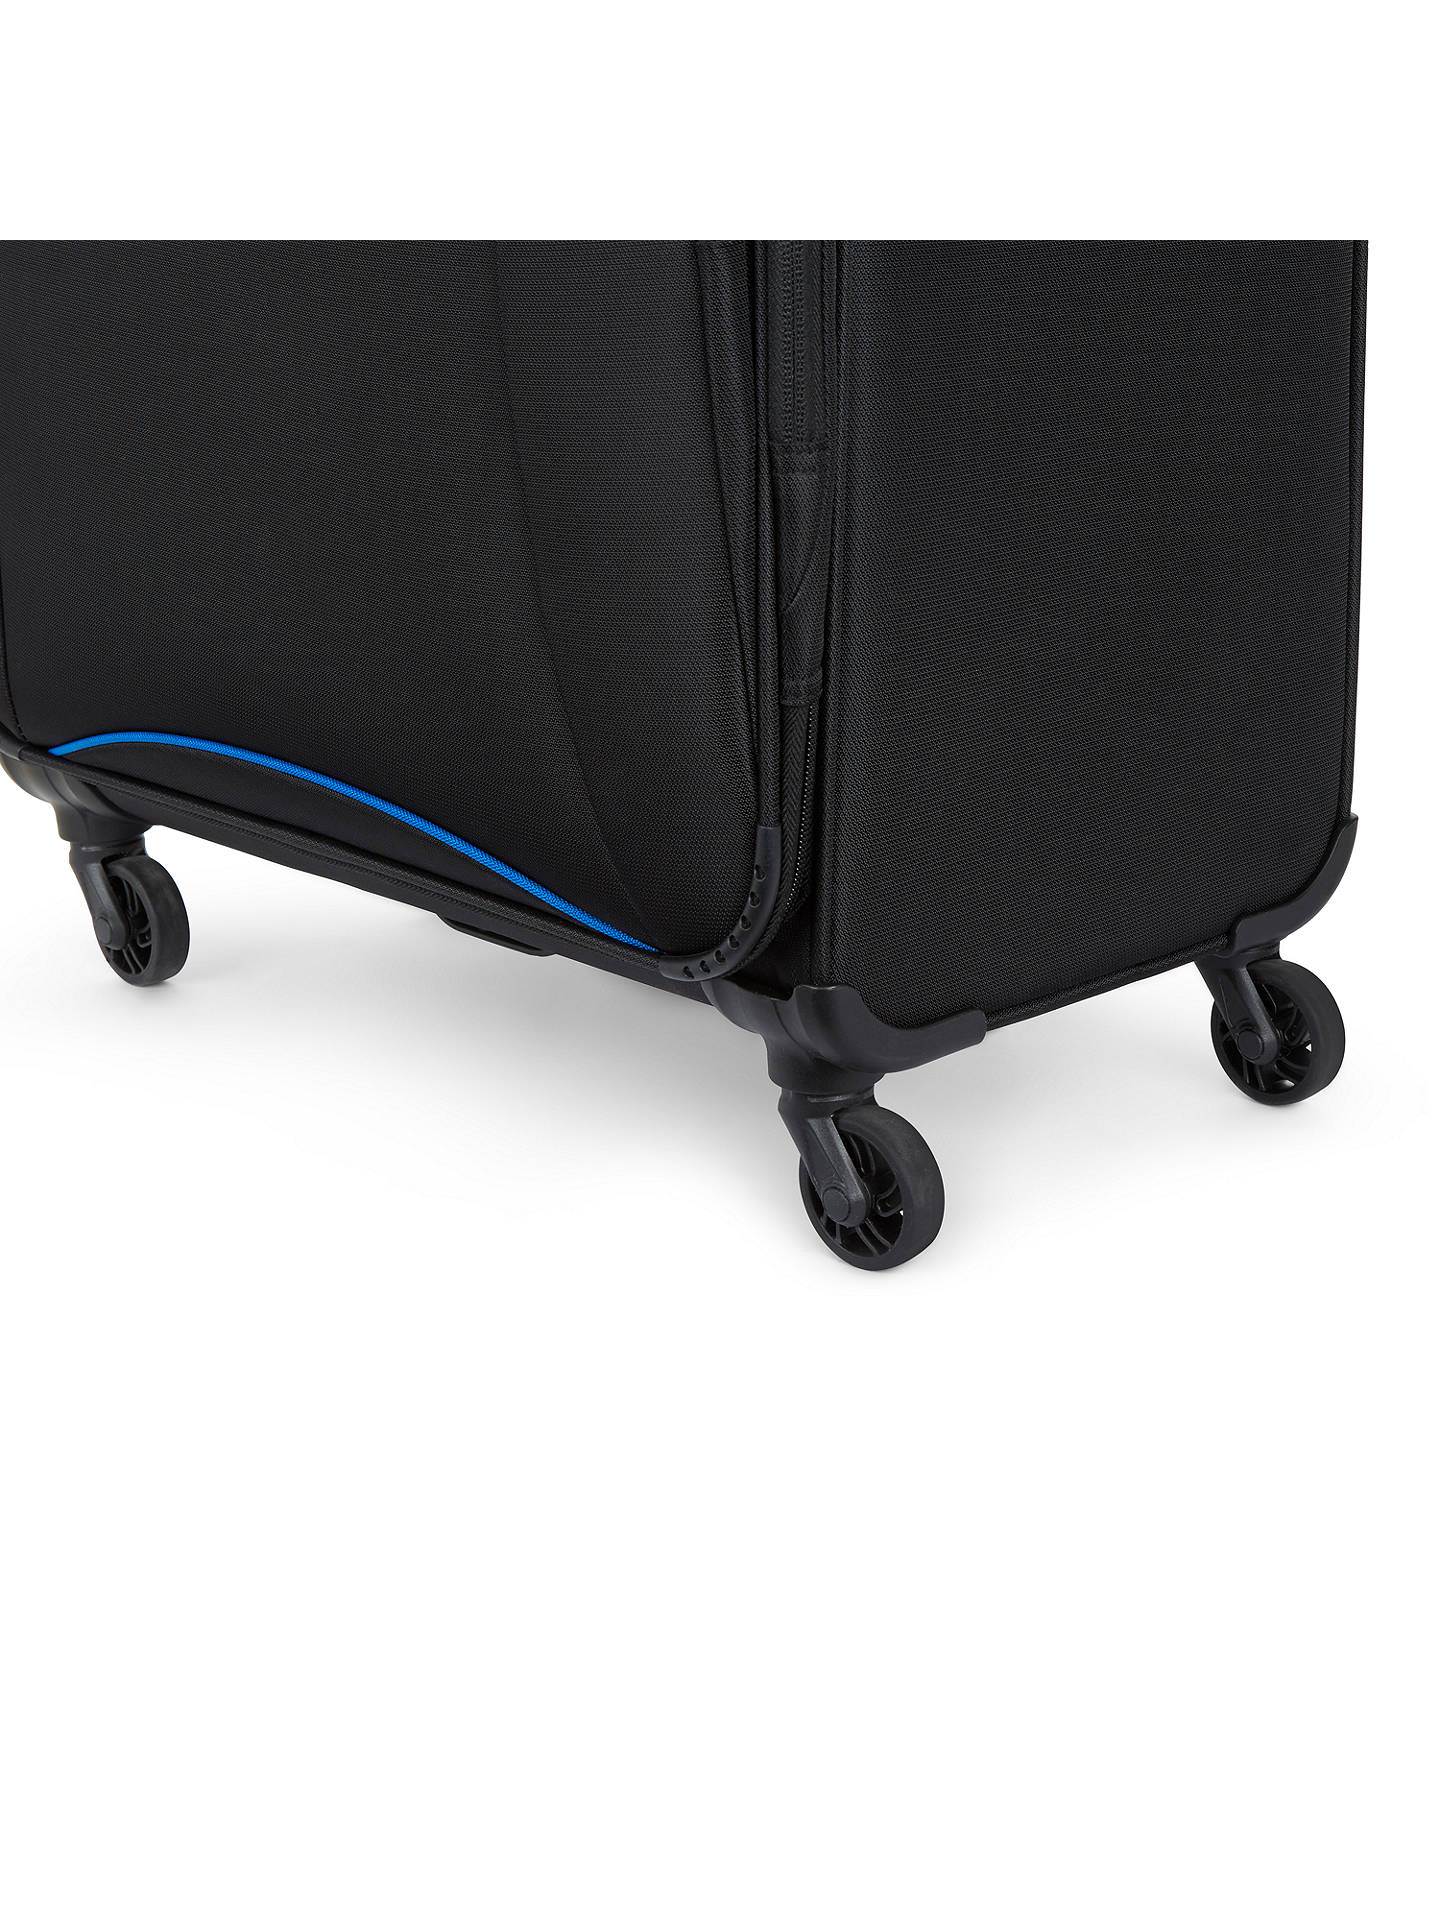 Buy Antler Zeolite 78cm 4-Wheel Large Suitcase, Black Online at johnlewis.com